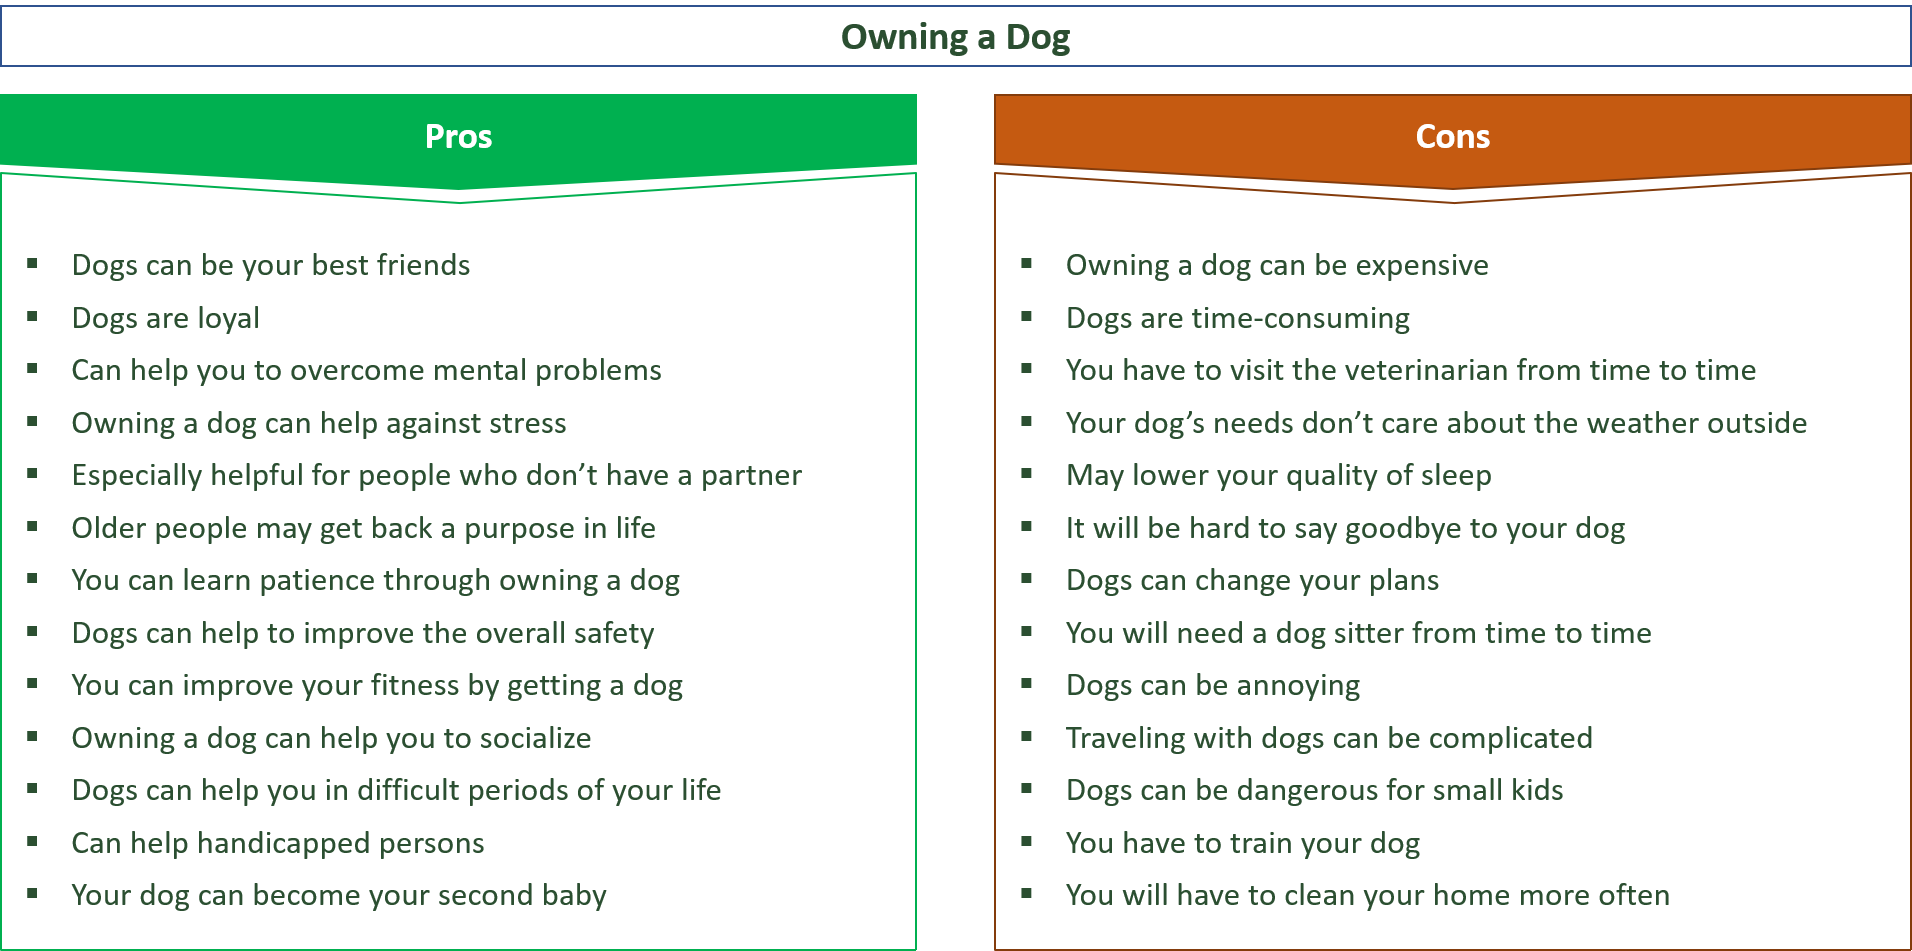 advantages and disadvantages of getting a dog